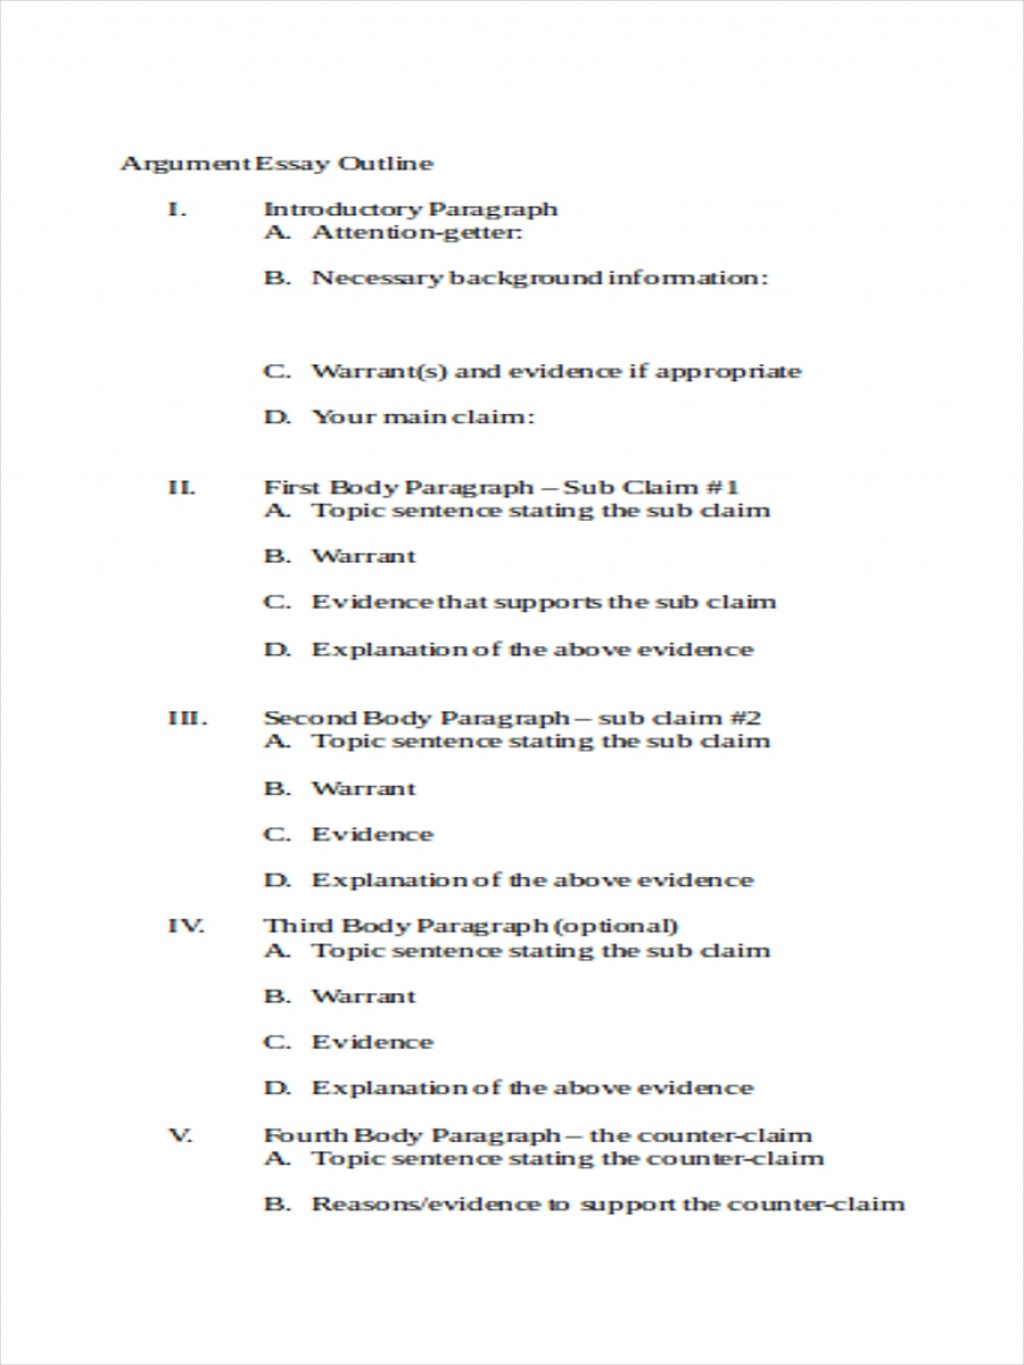 002 Warrant Essay Example 3490197733 In Singular Search Argumentative Large